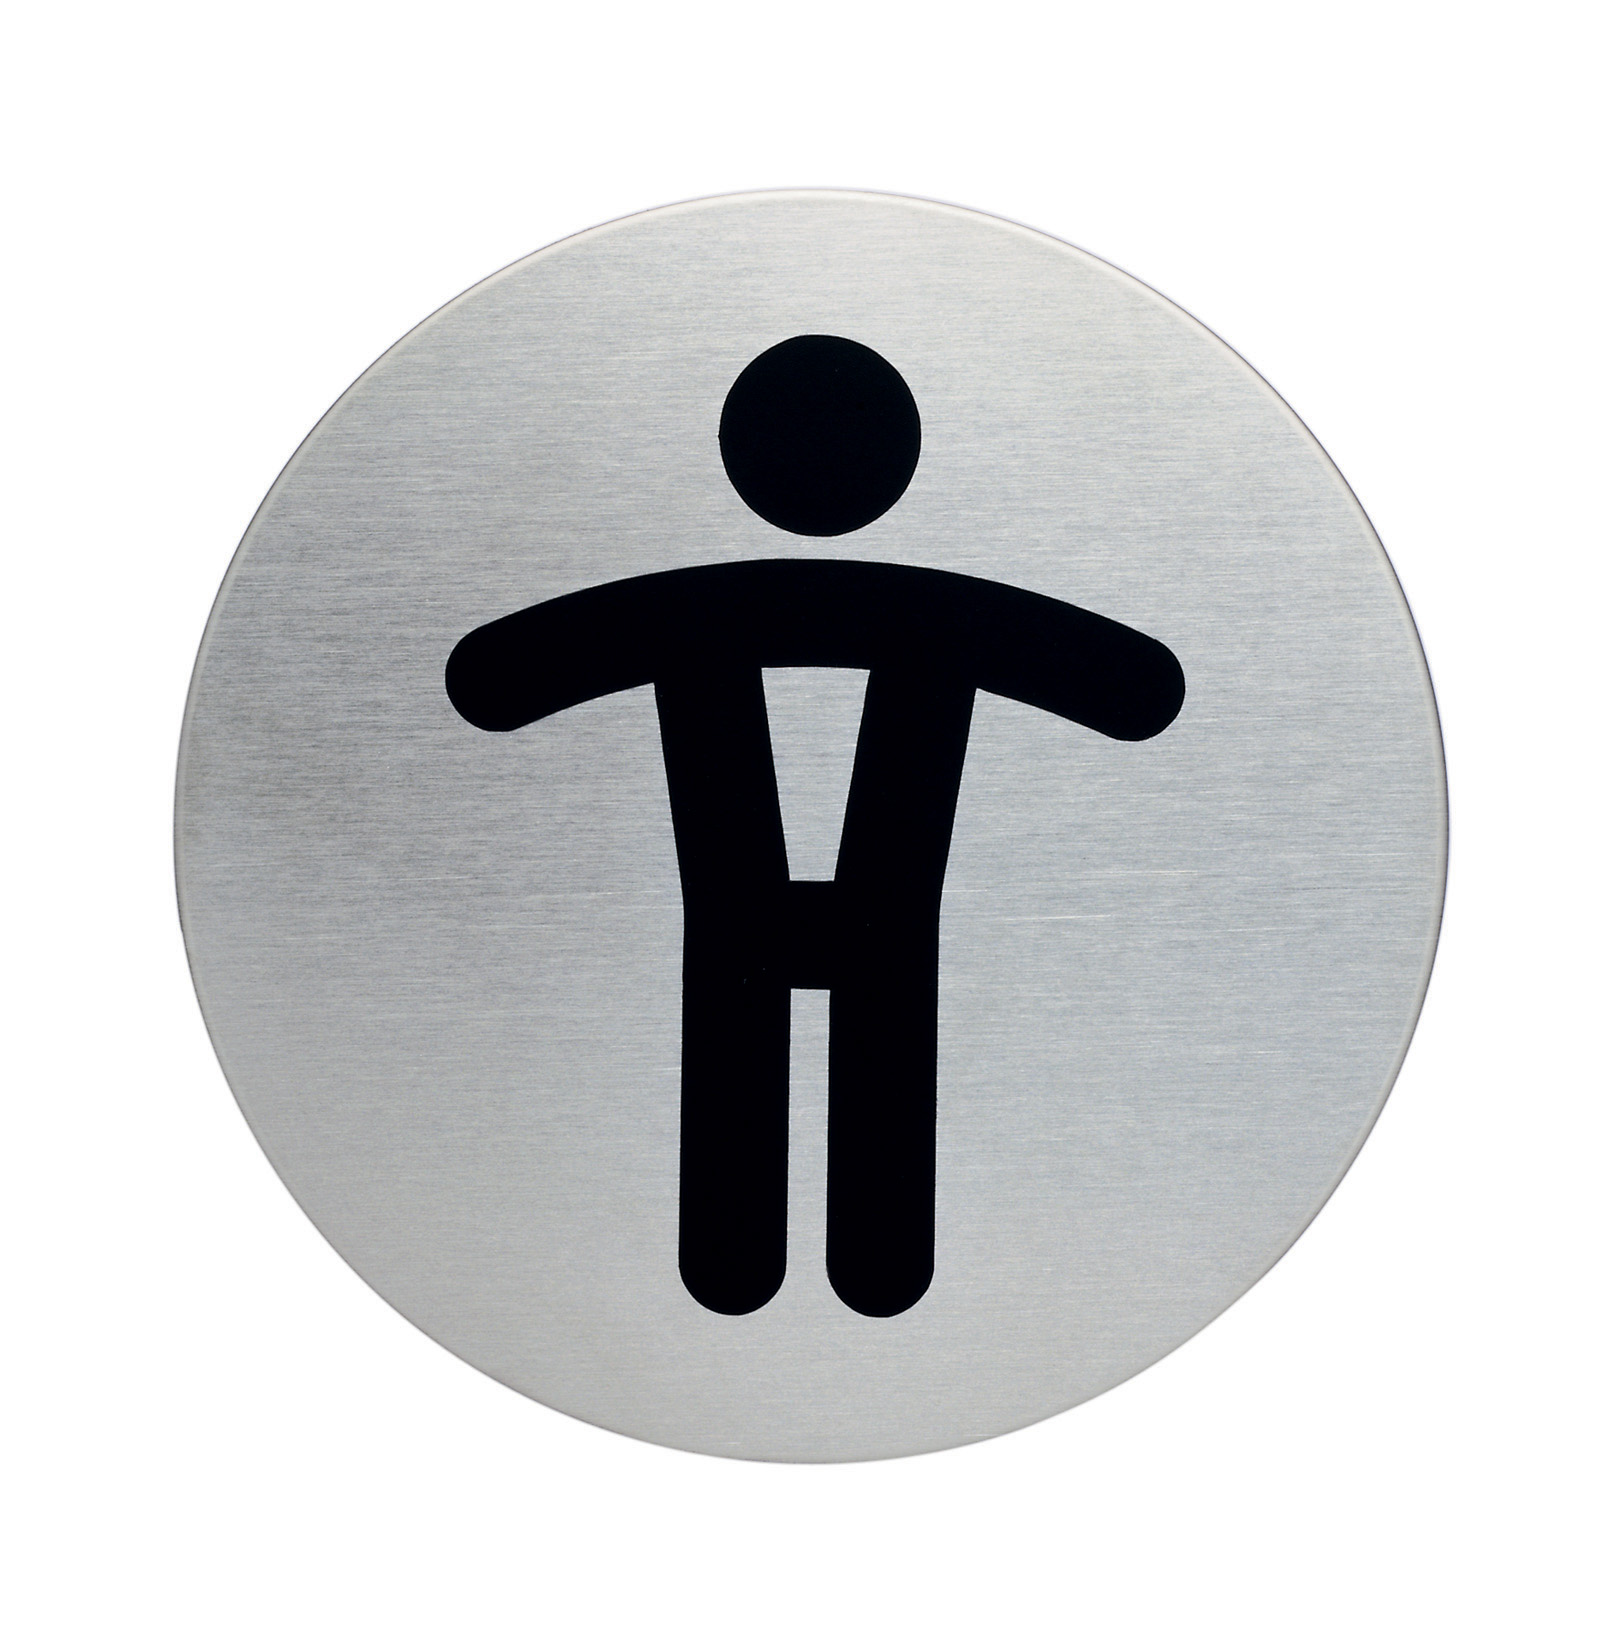 RVS Pictogram Ø 83mm toilet heren